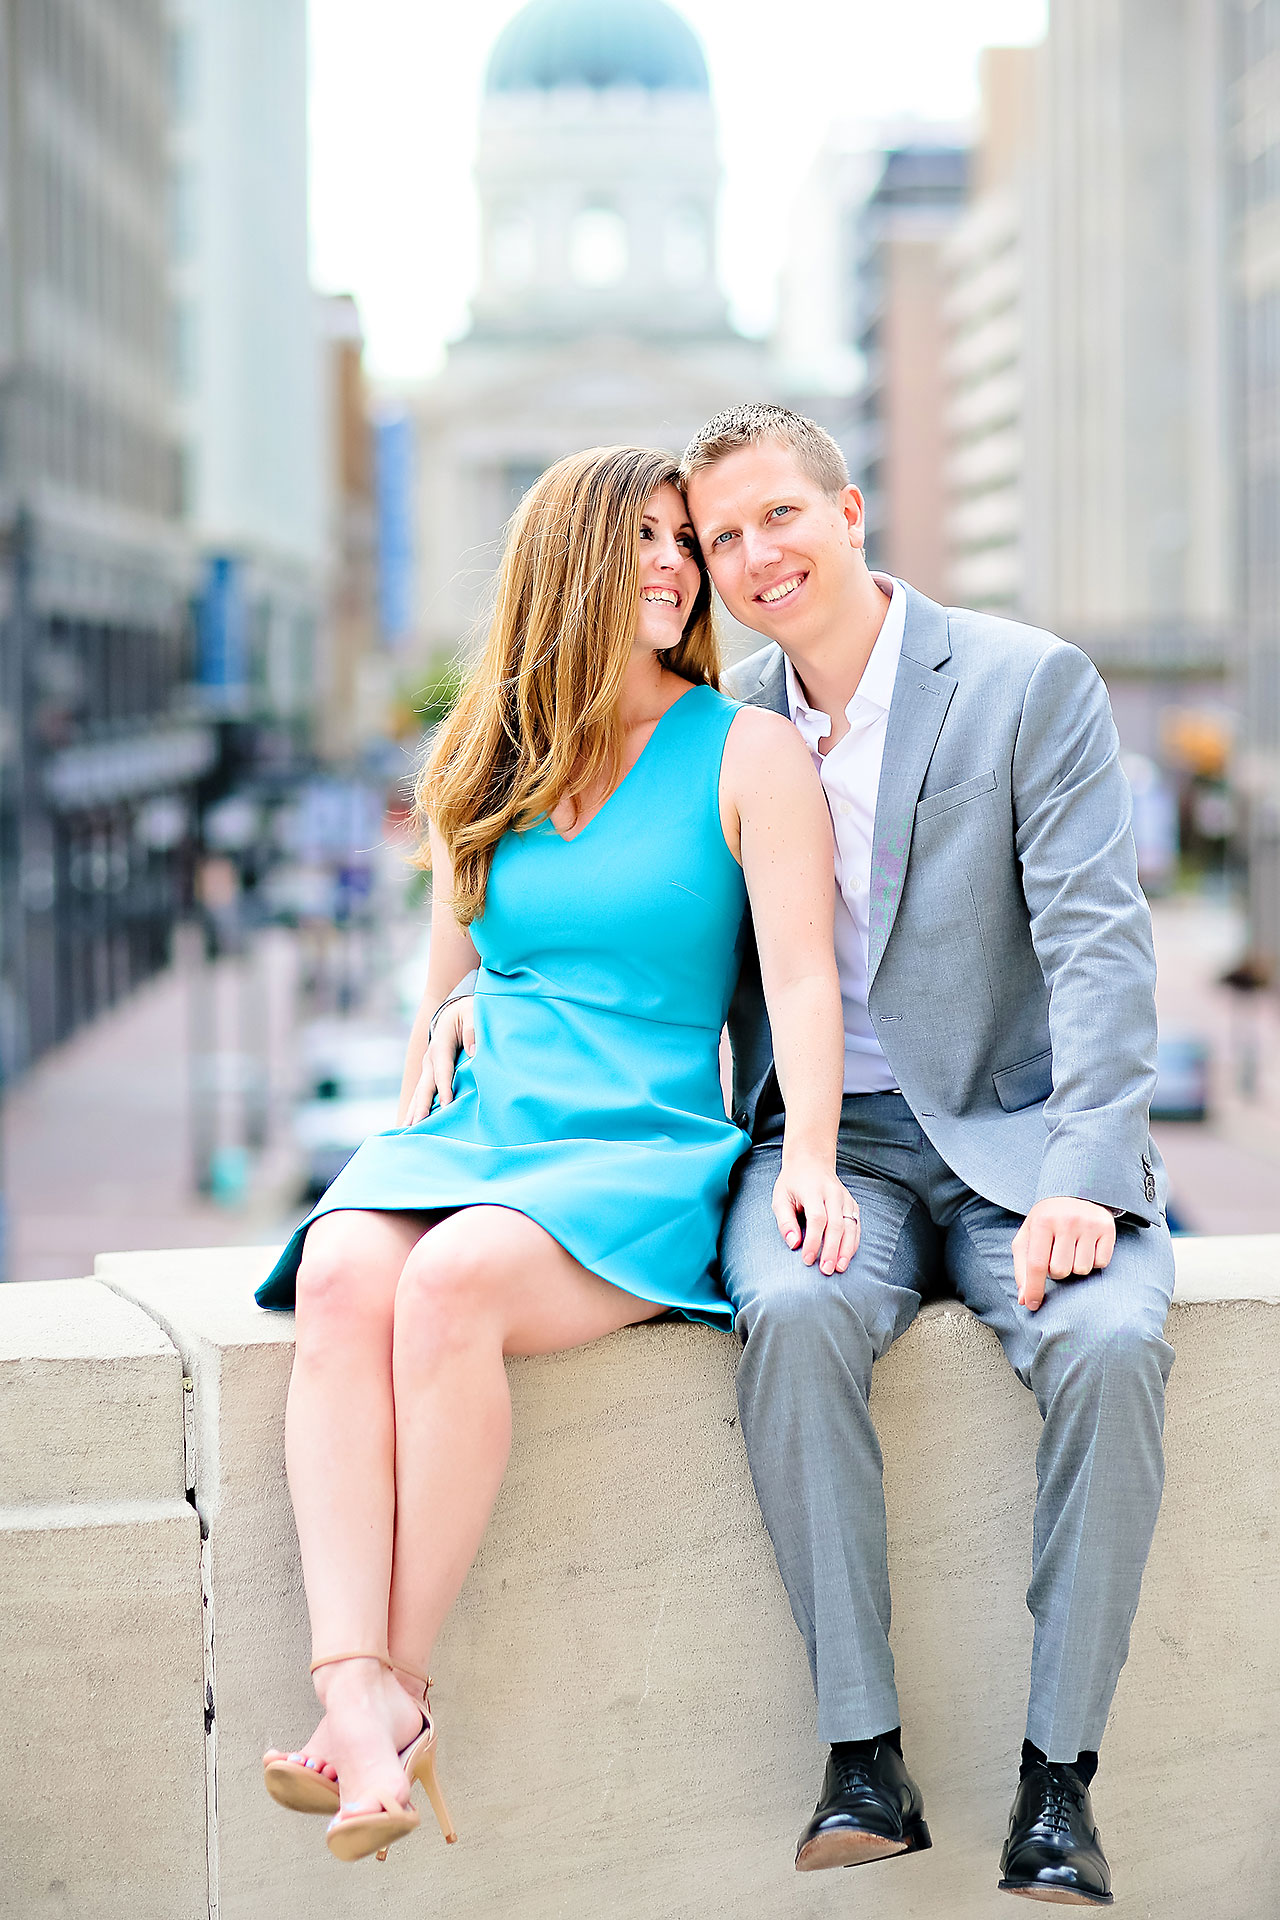 Chelsea Jeff Downtown Indy Engagement Session 025